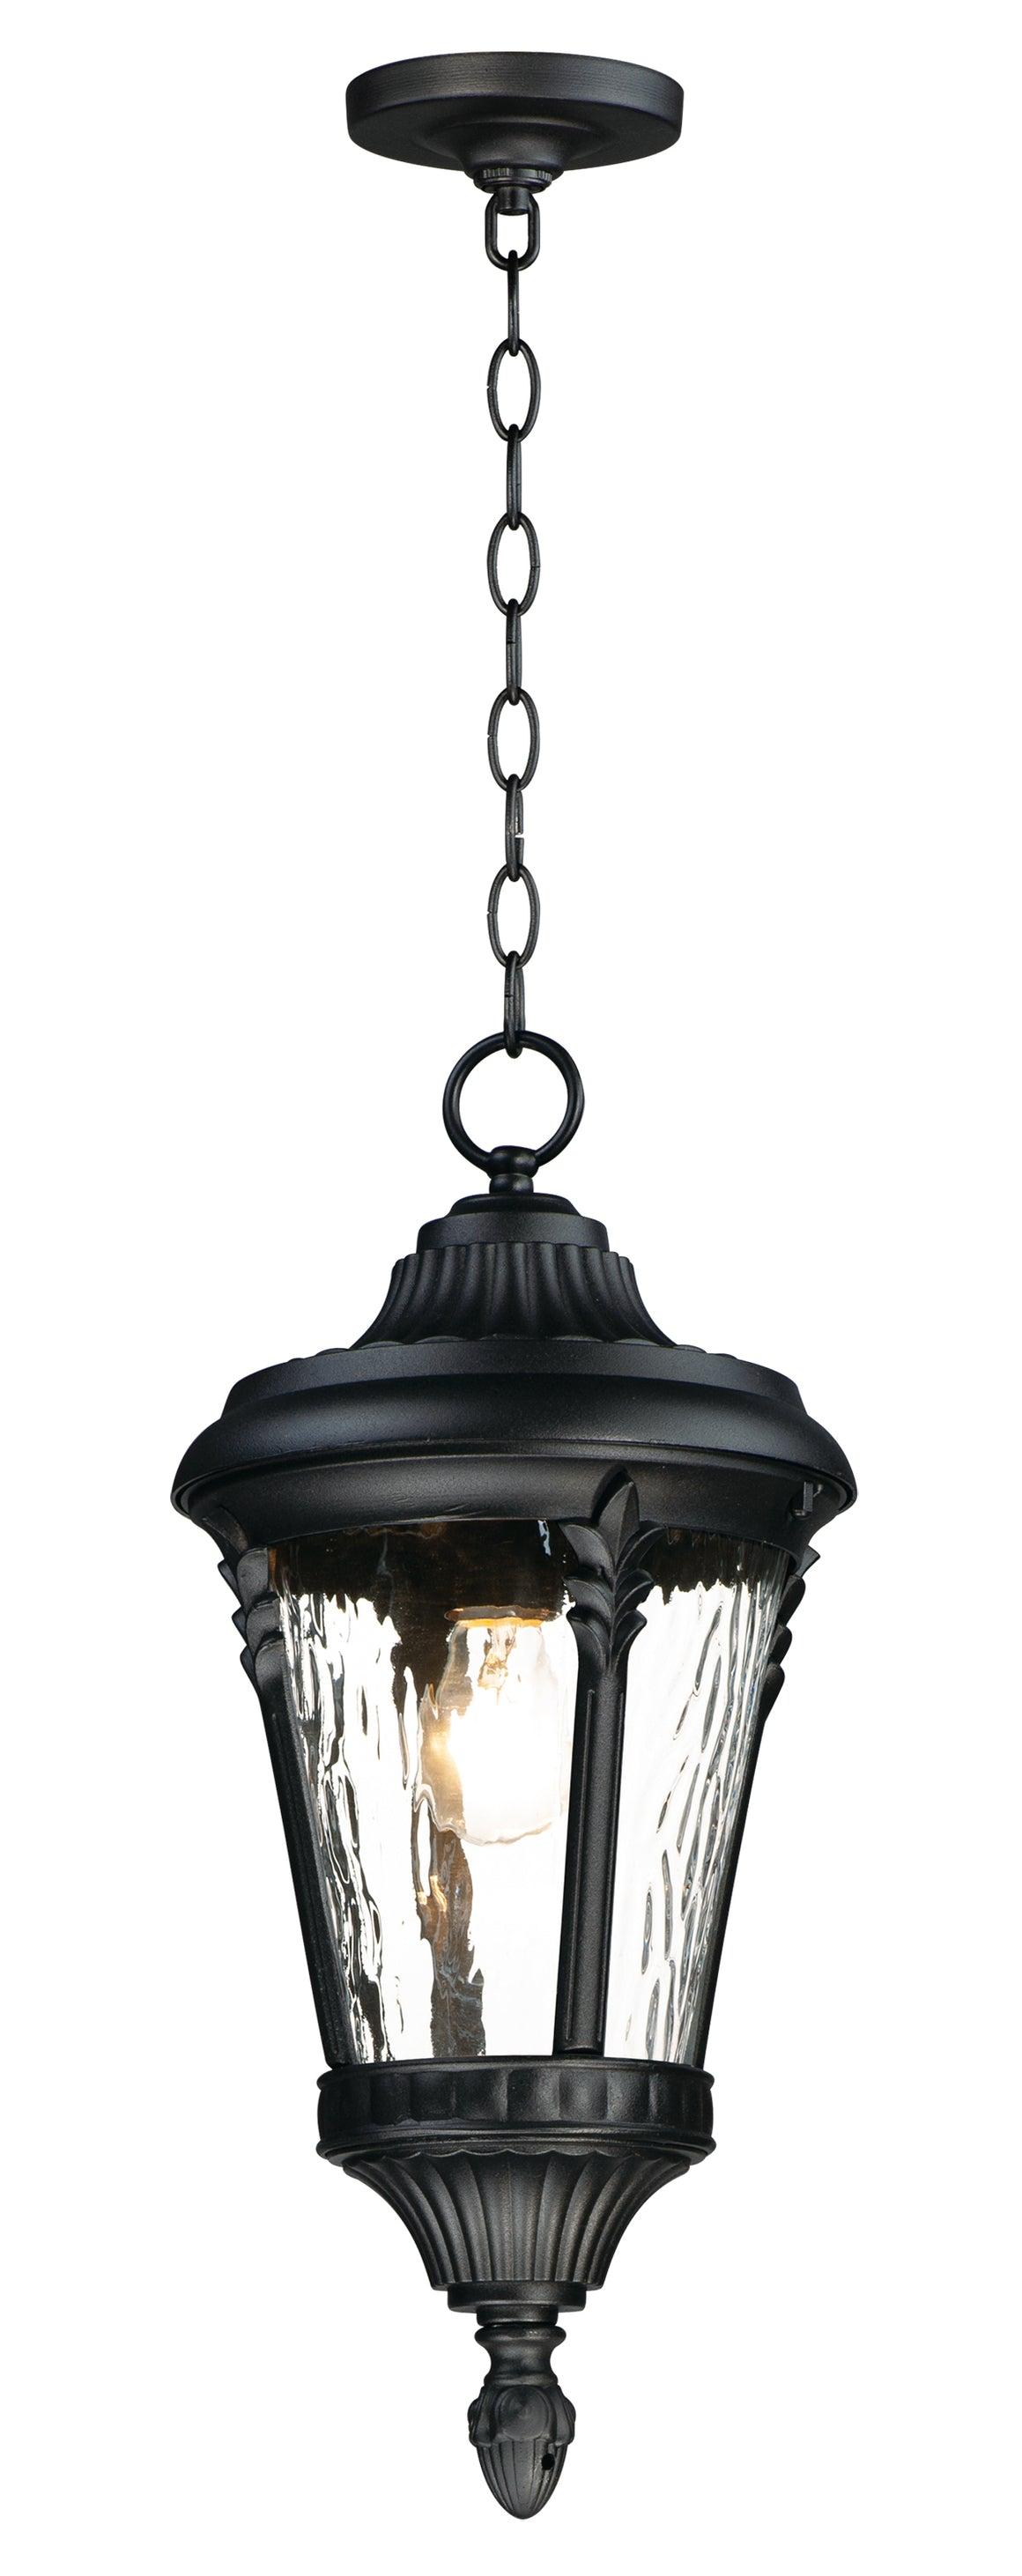 Sentry 1-Light Outdoor Hanging Pendant